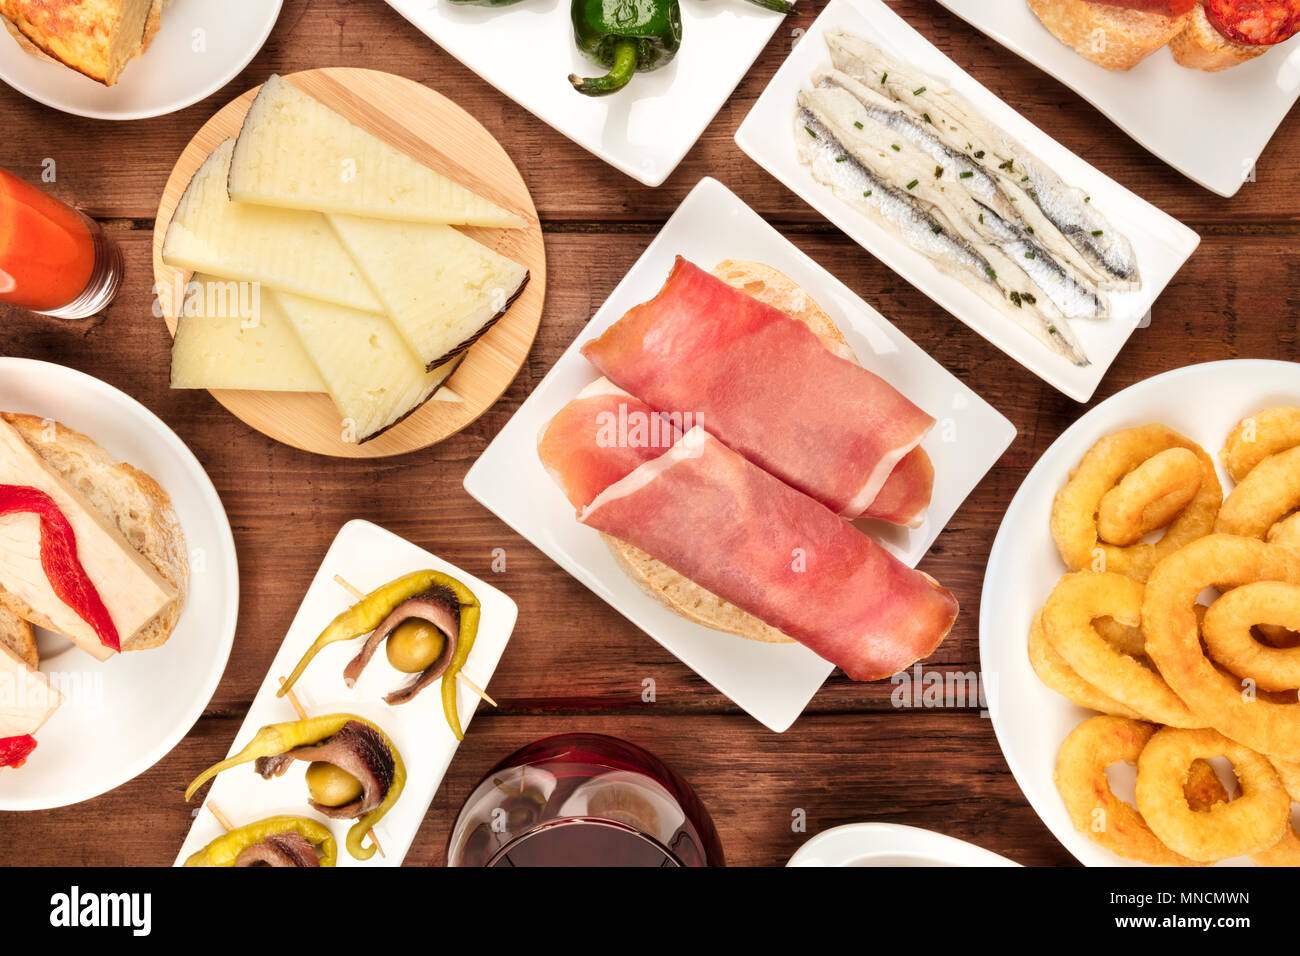 The food of Spain. An overhead photo of different Spanish tapas, shot from above on a dark rustic texture. Jamon, cheese, gildas, anchovies, calamari  - Stock Image